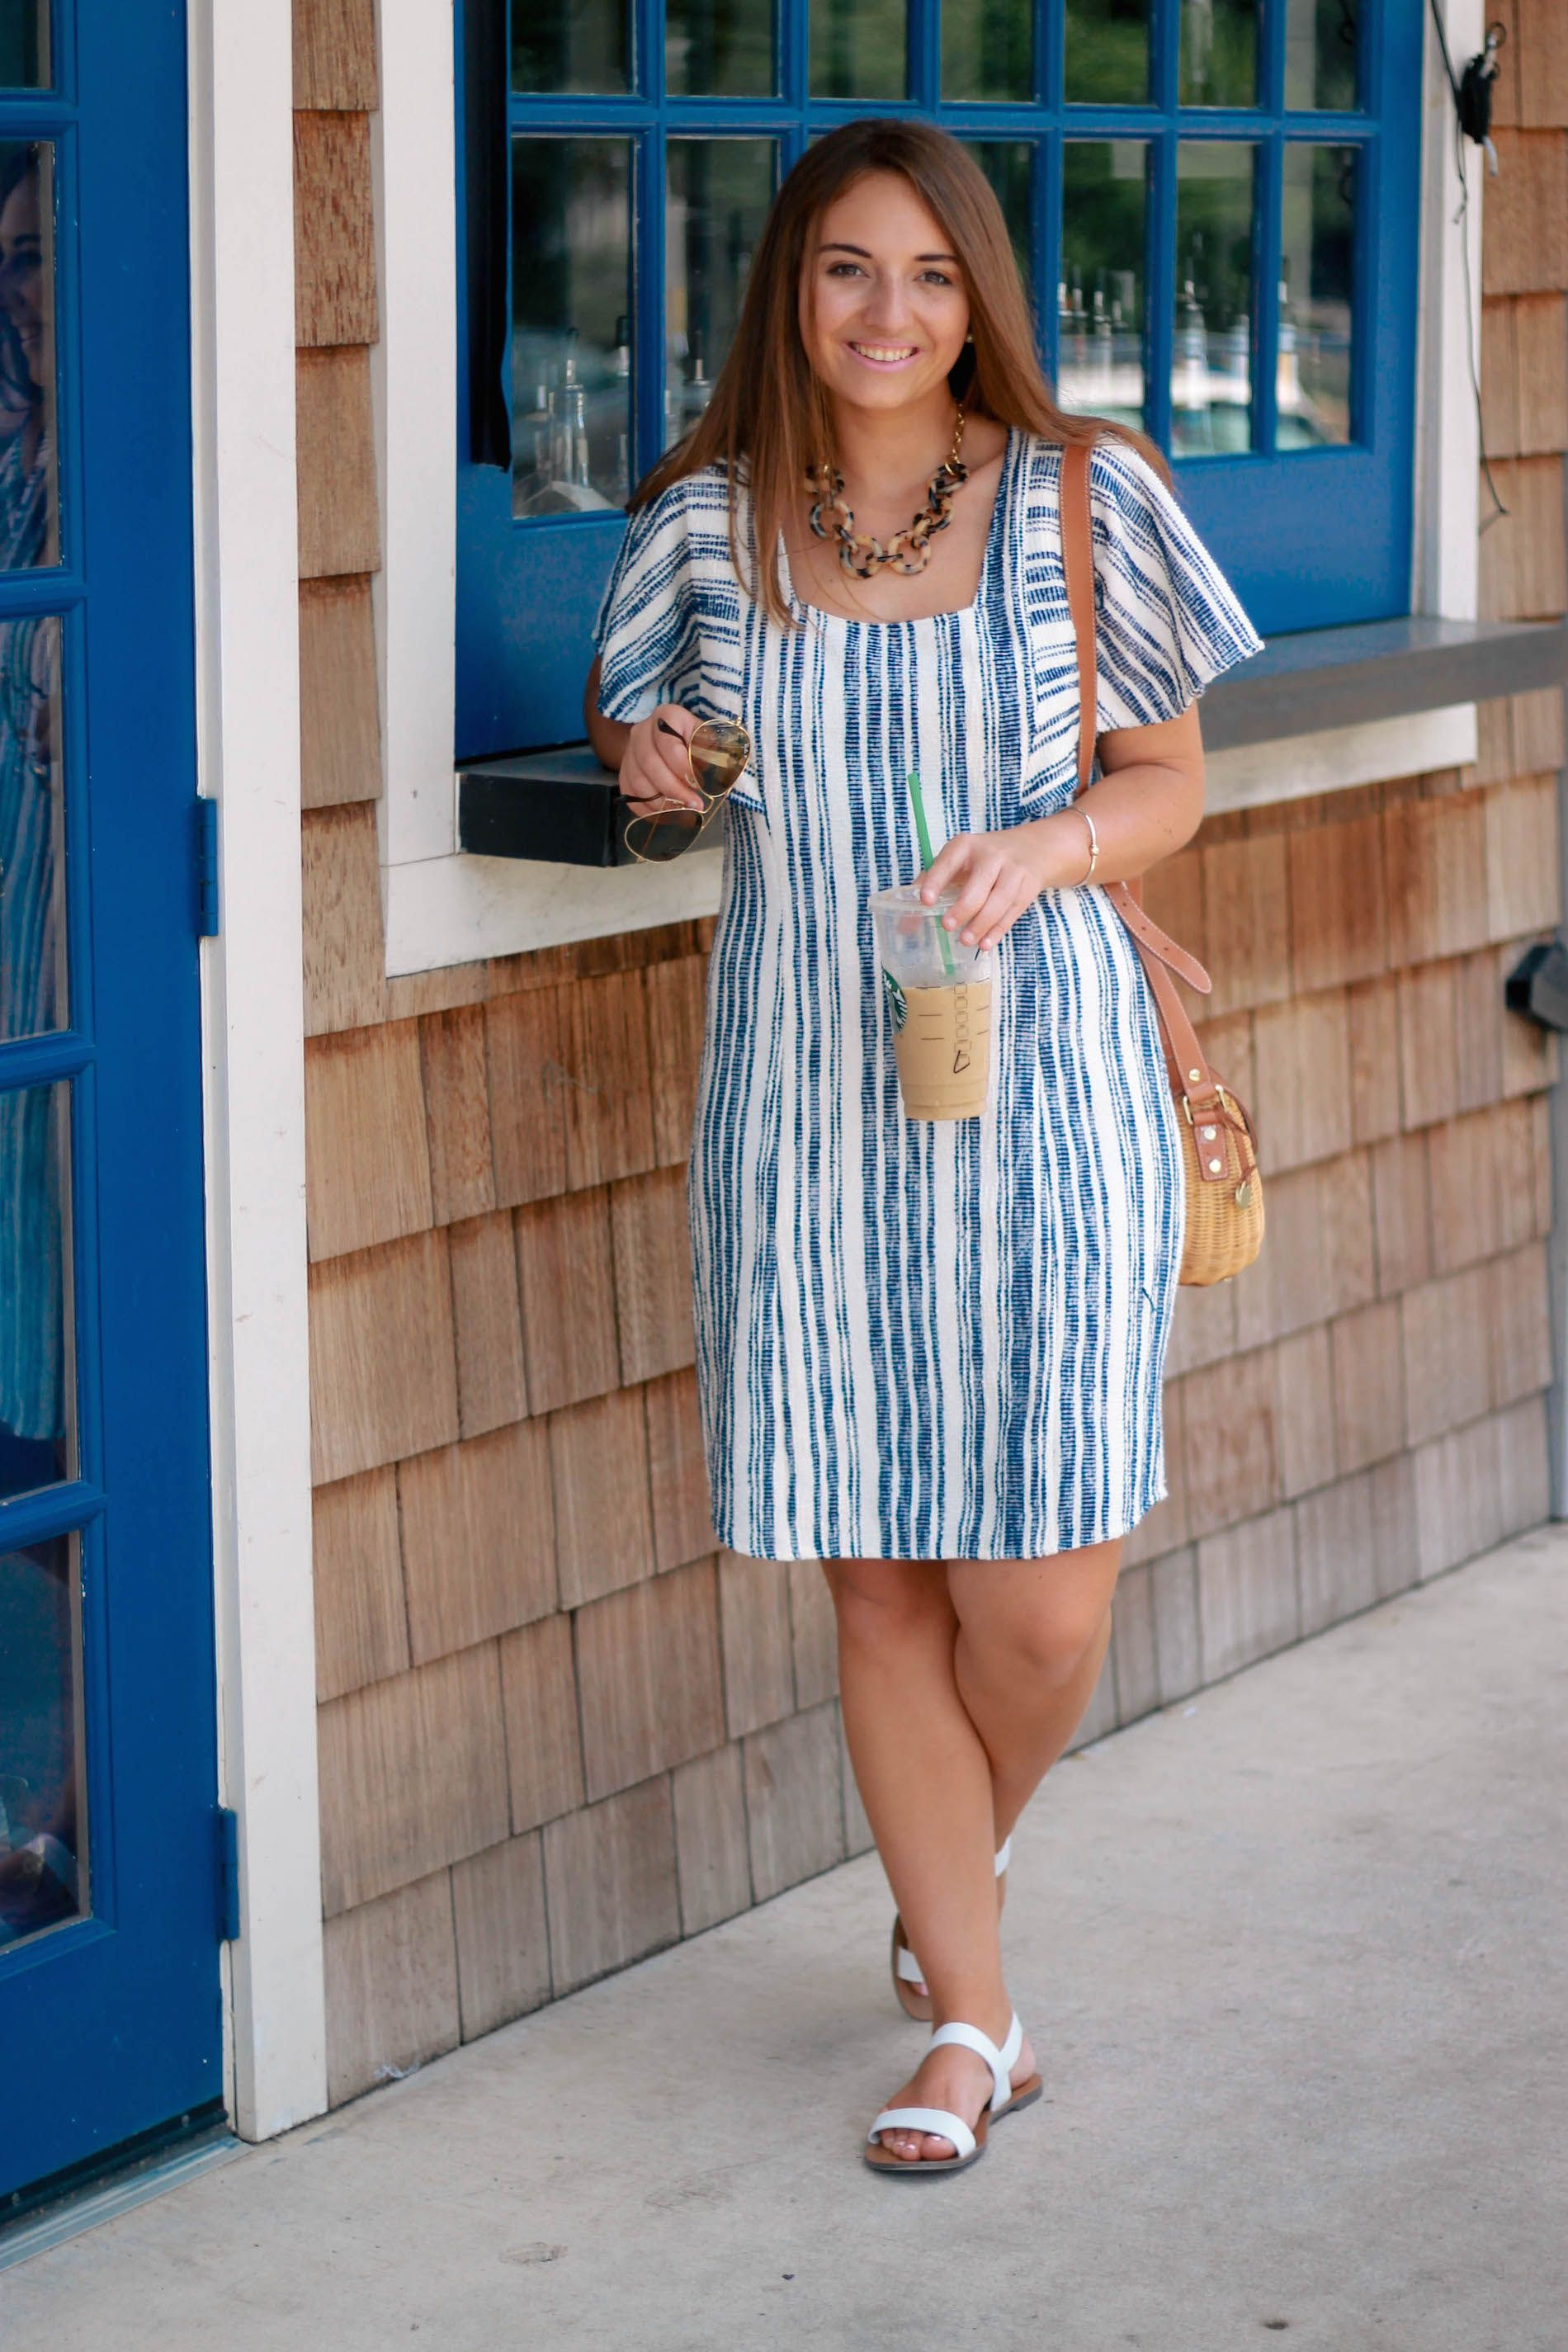 80 S Summer Style The Coastal Confidence Summer Fashion Shoulder Pad Dress Style [ 2850 x 1900 Pixel ]